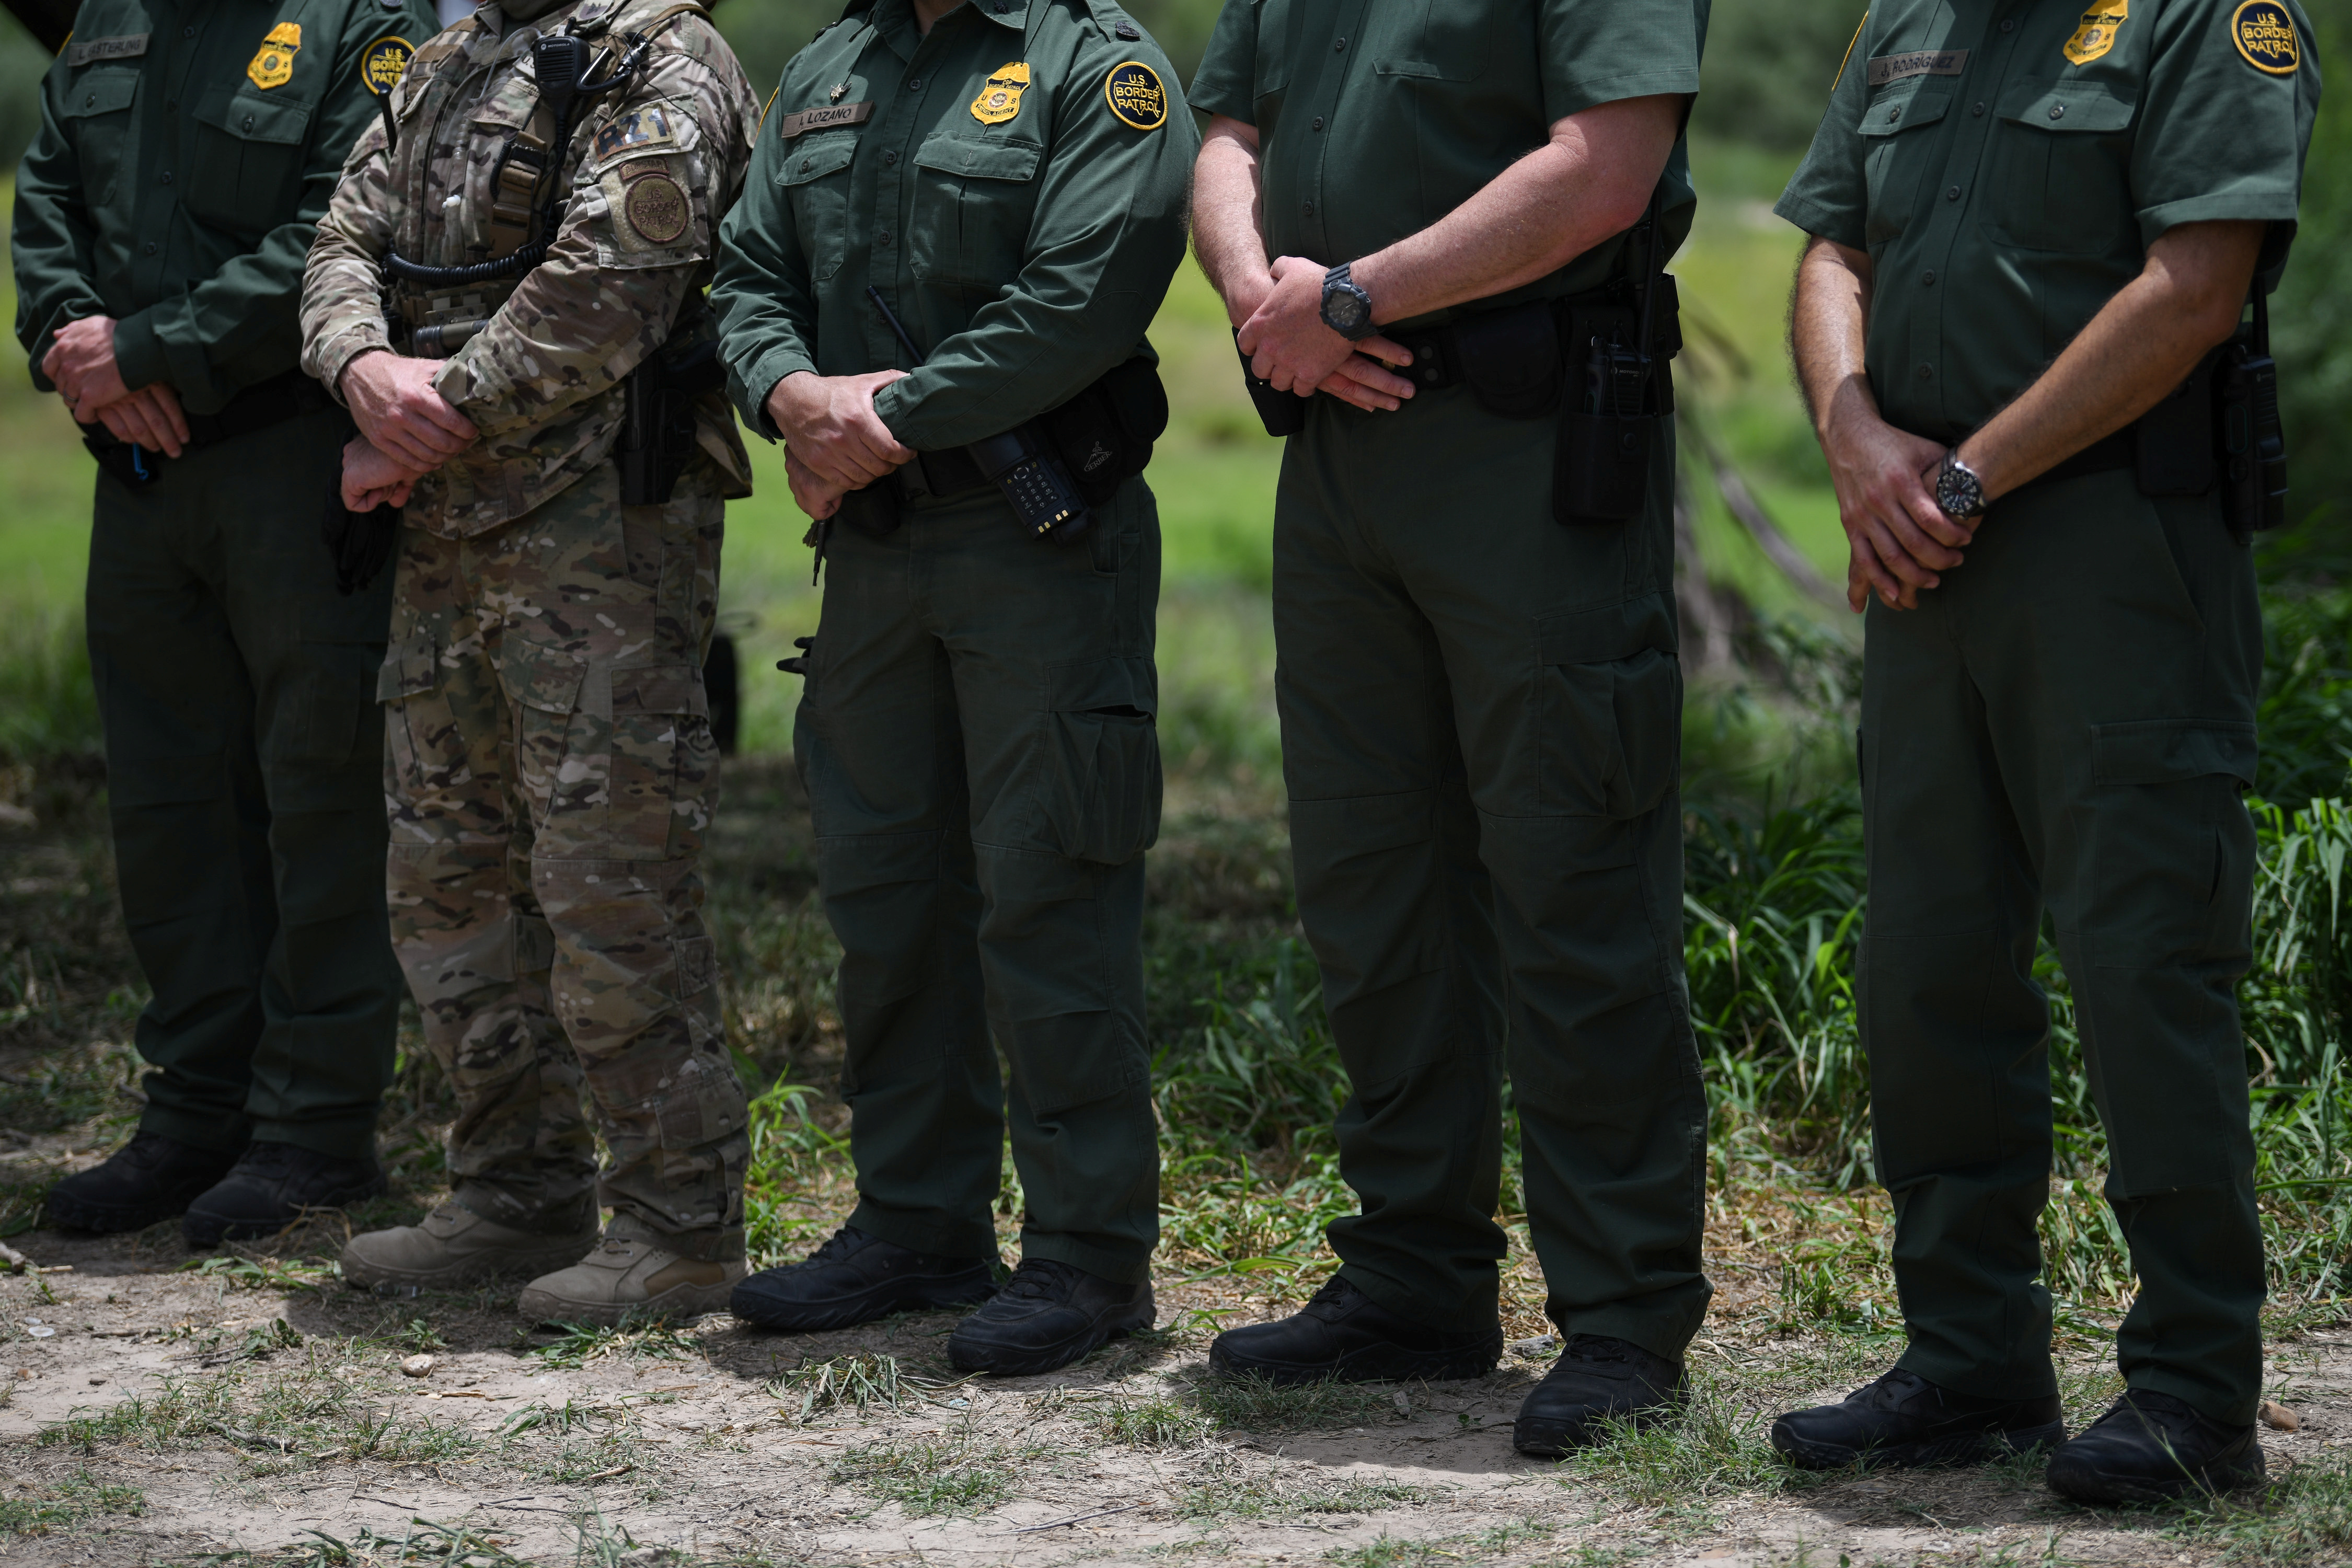 U.S. Border Patrol agents stand at attention during a 'Border Safety Initiative' media event at the U.S.-Mexico border in Mission, Texas, U.S., July 1, 2019. REUTERS/Loren Elliott